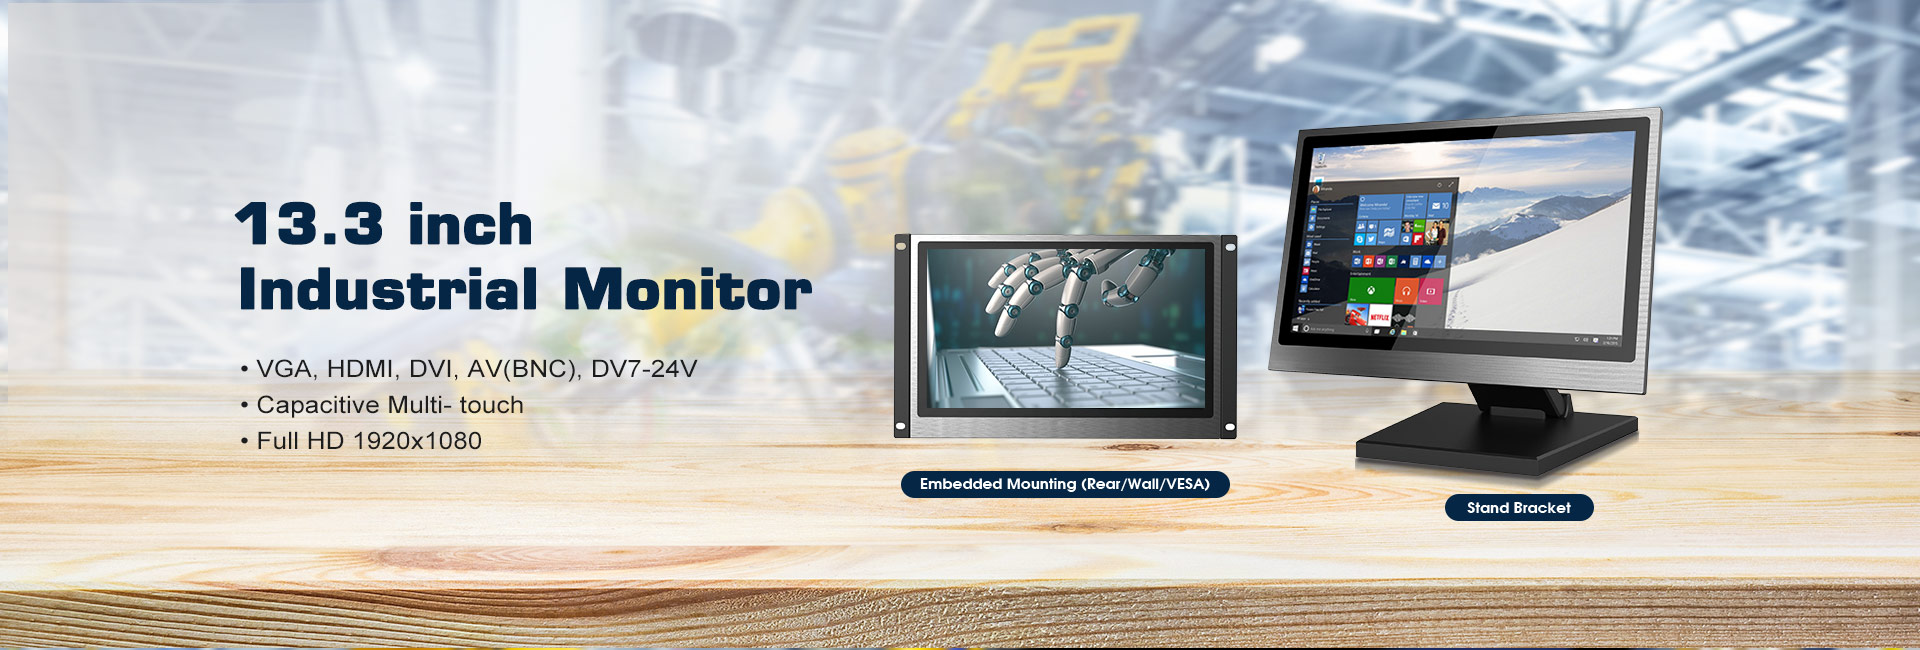 Industrial Embedded Monitor K133NT 13.3 inch